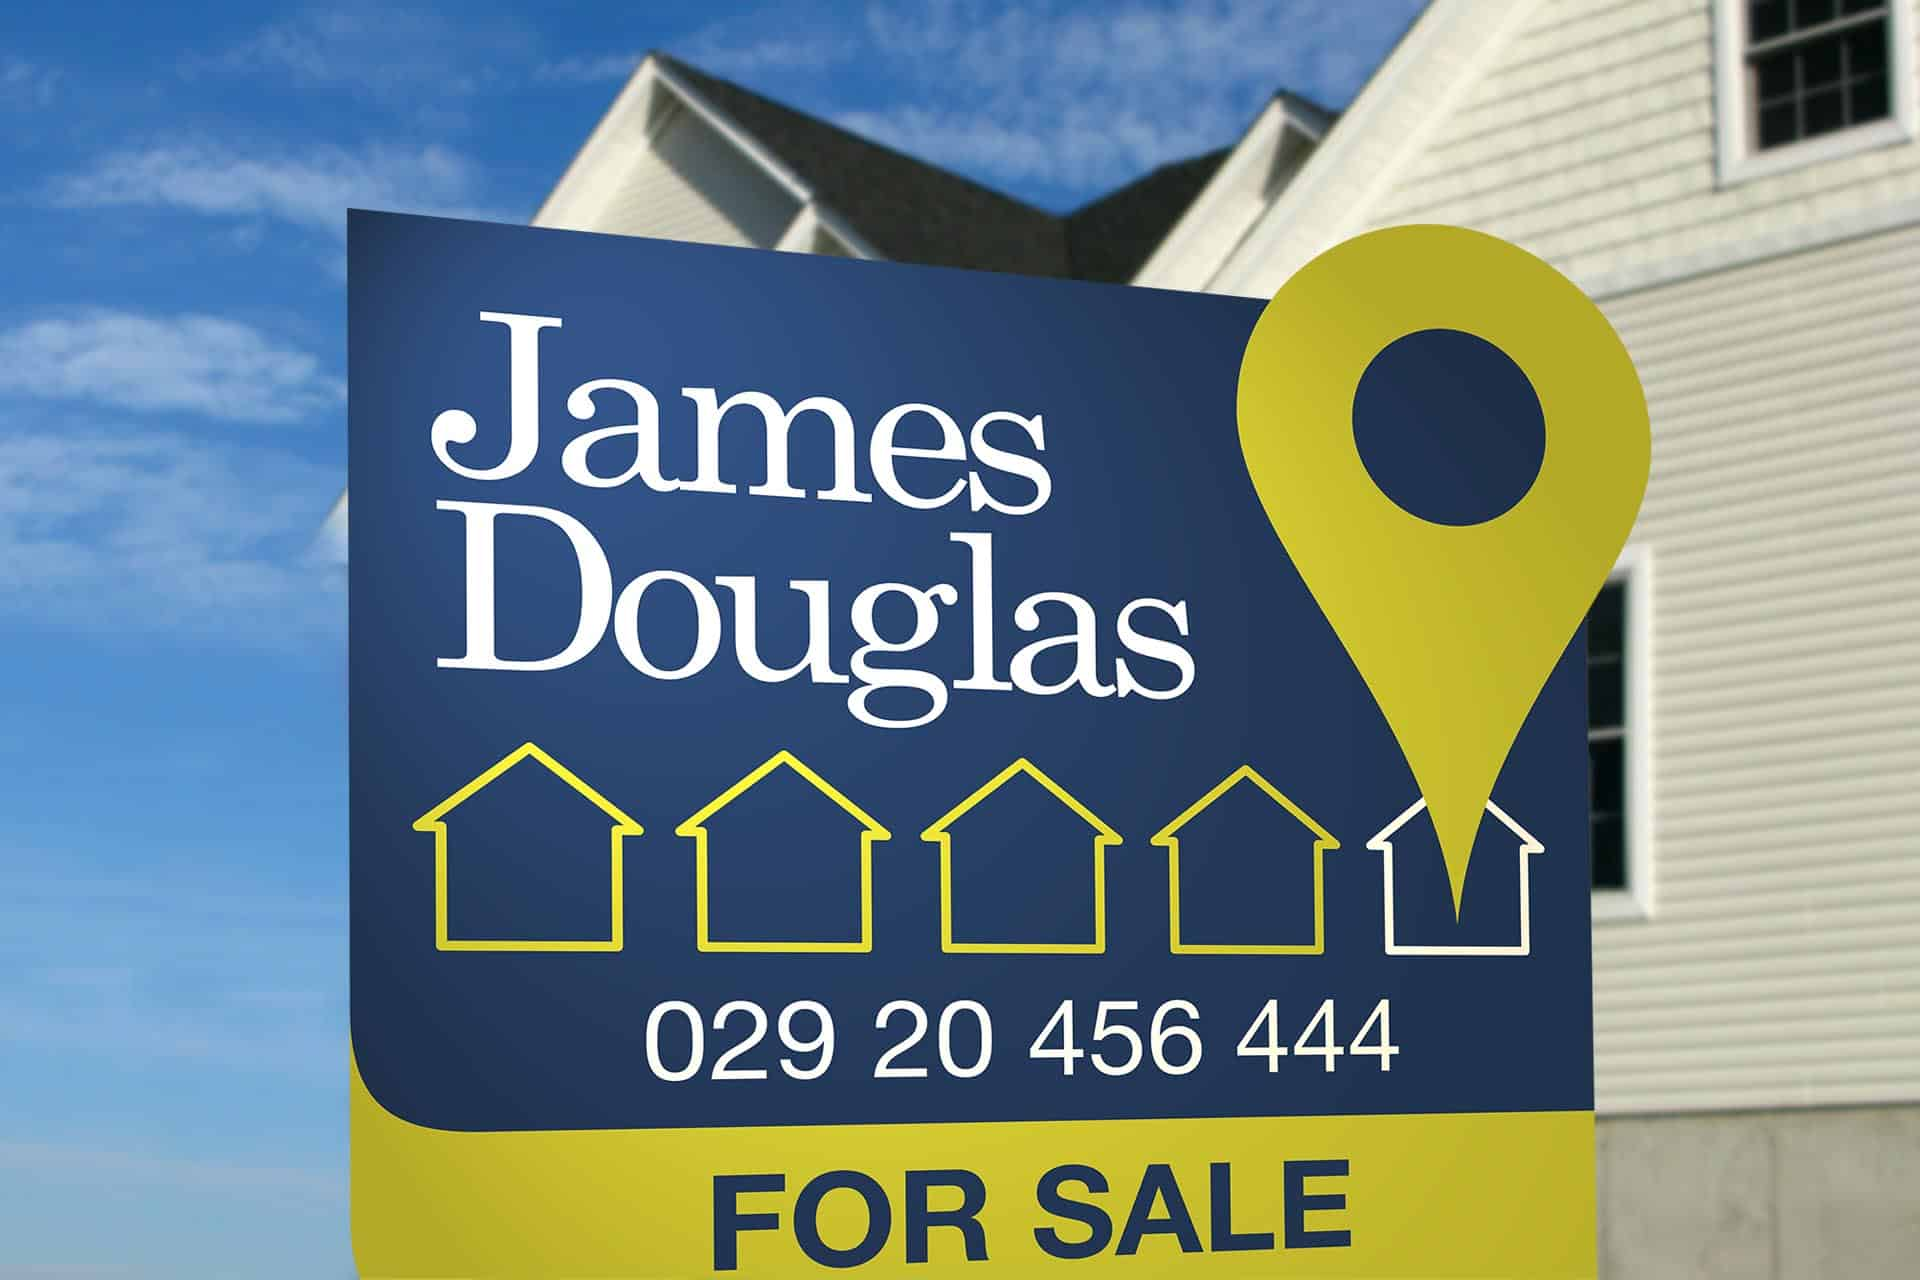 James Douglas Estate Agents branding and logo design